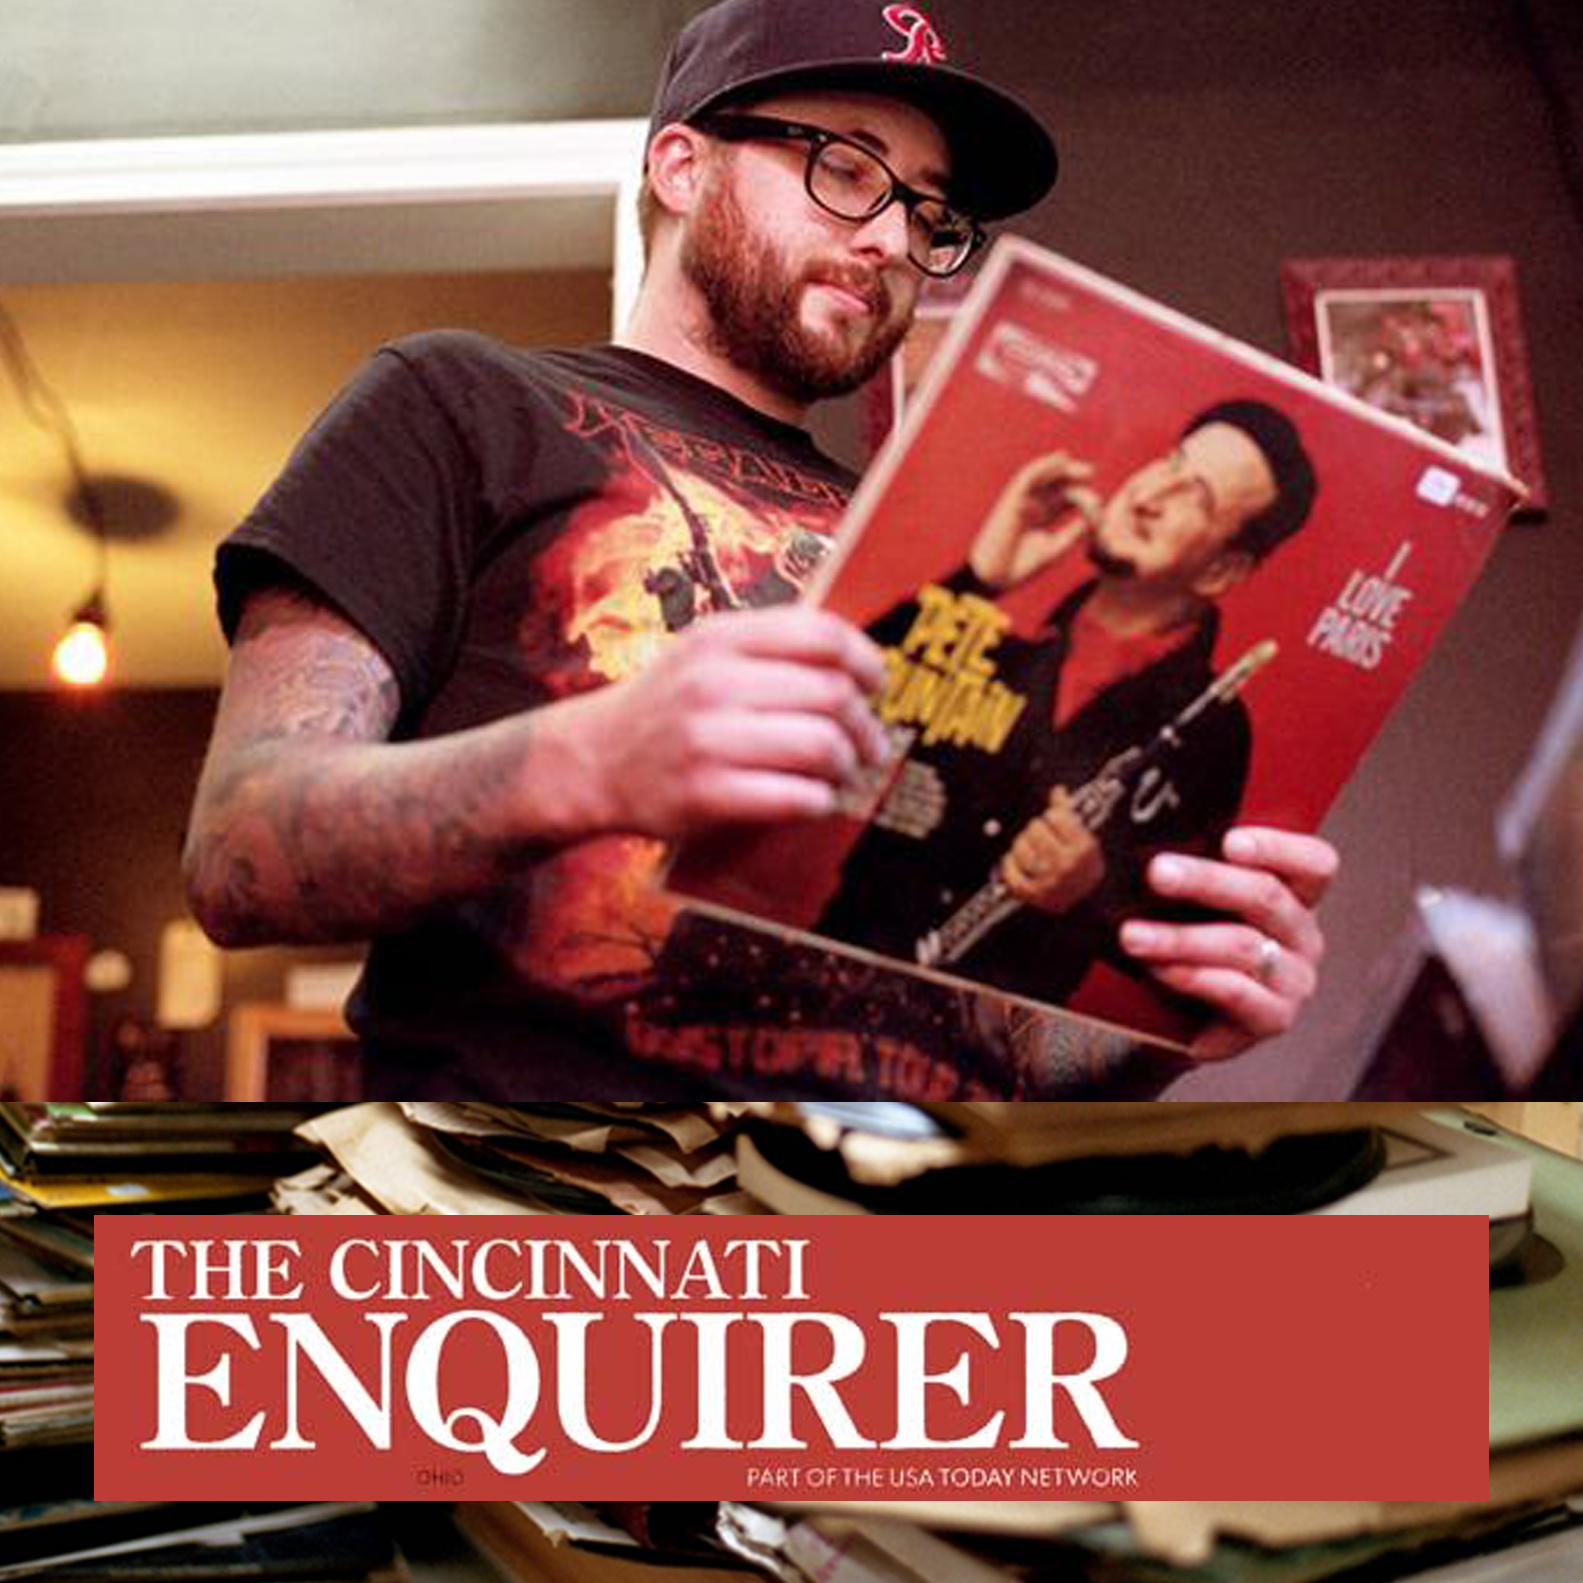 CINCINNATI ENQUIRER – Cincinnati record stores are booming. This book explains why.